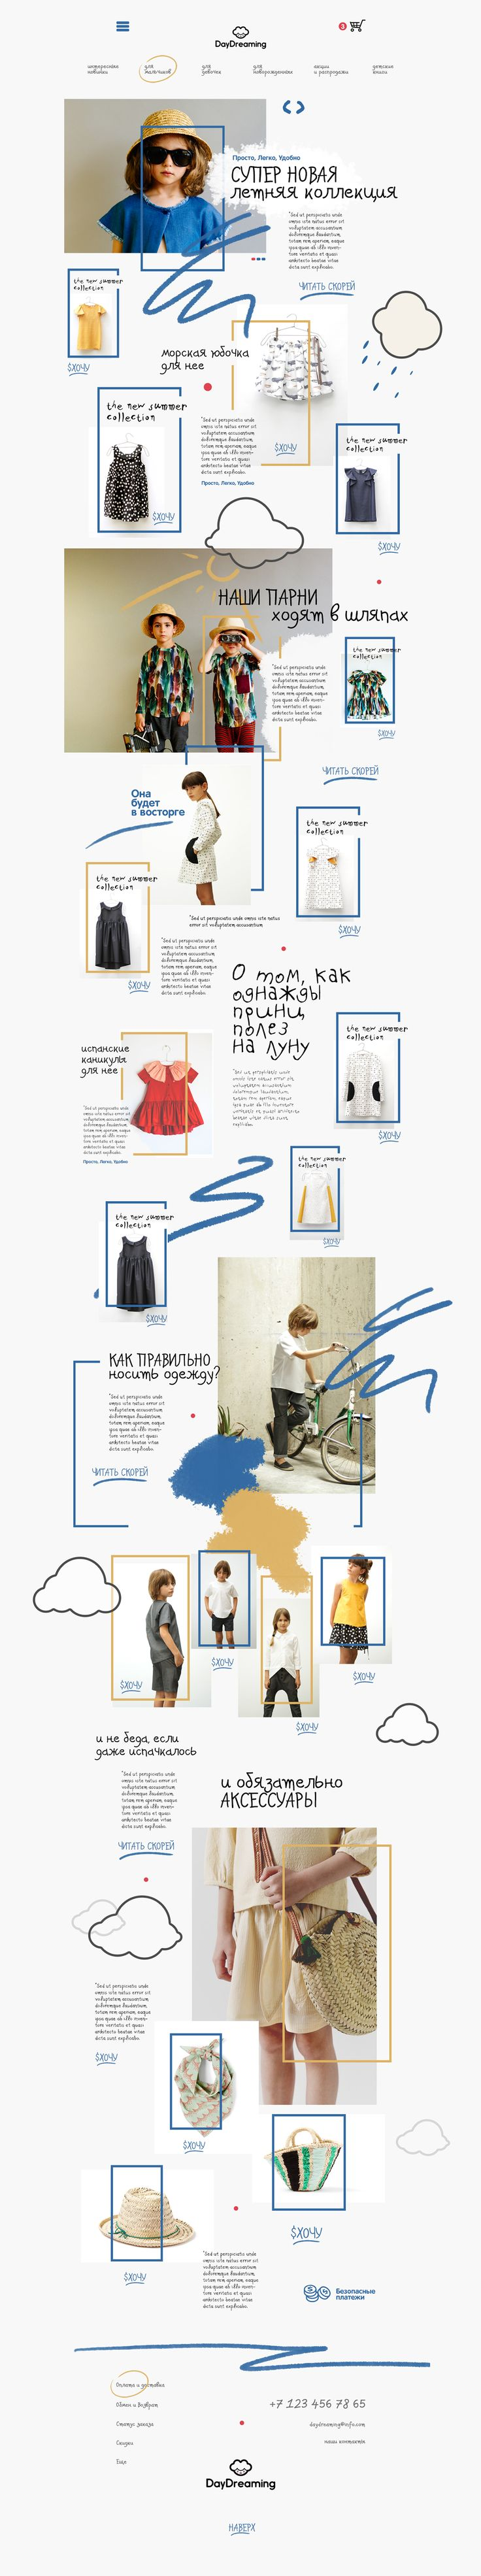 PINEADO MAS DE 1.4 K email design han pedido fusilarlo children's clothing store